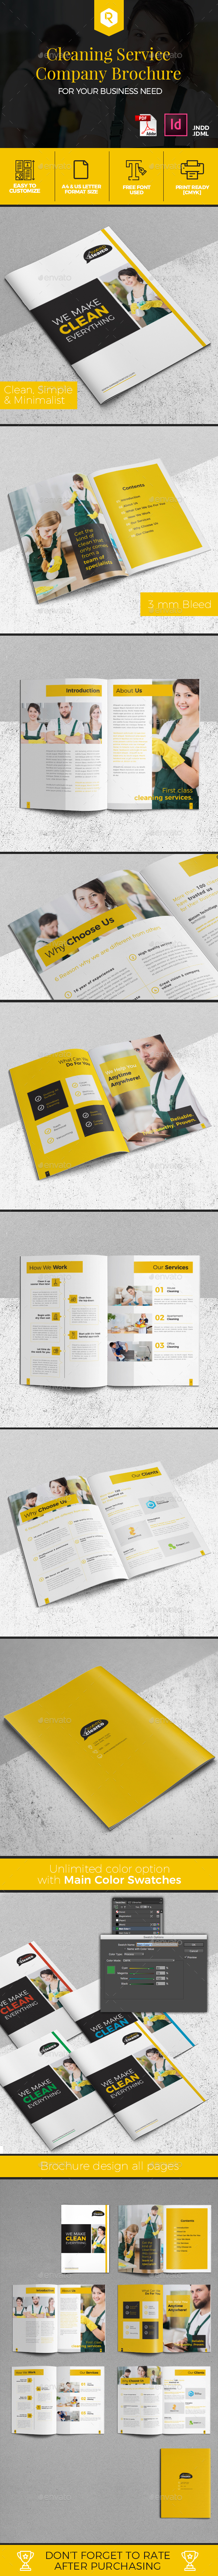 Cleaning Service Company Brochure - Corporate Brochures